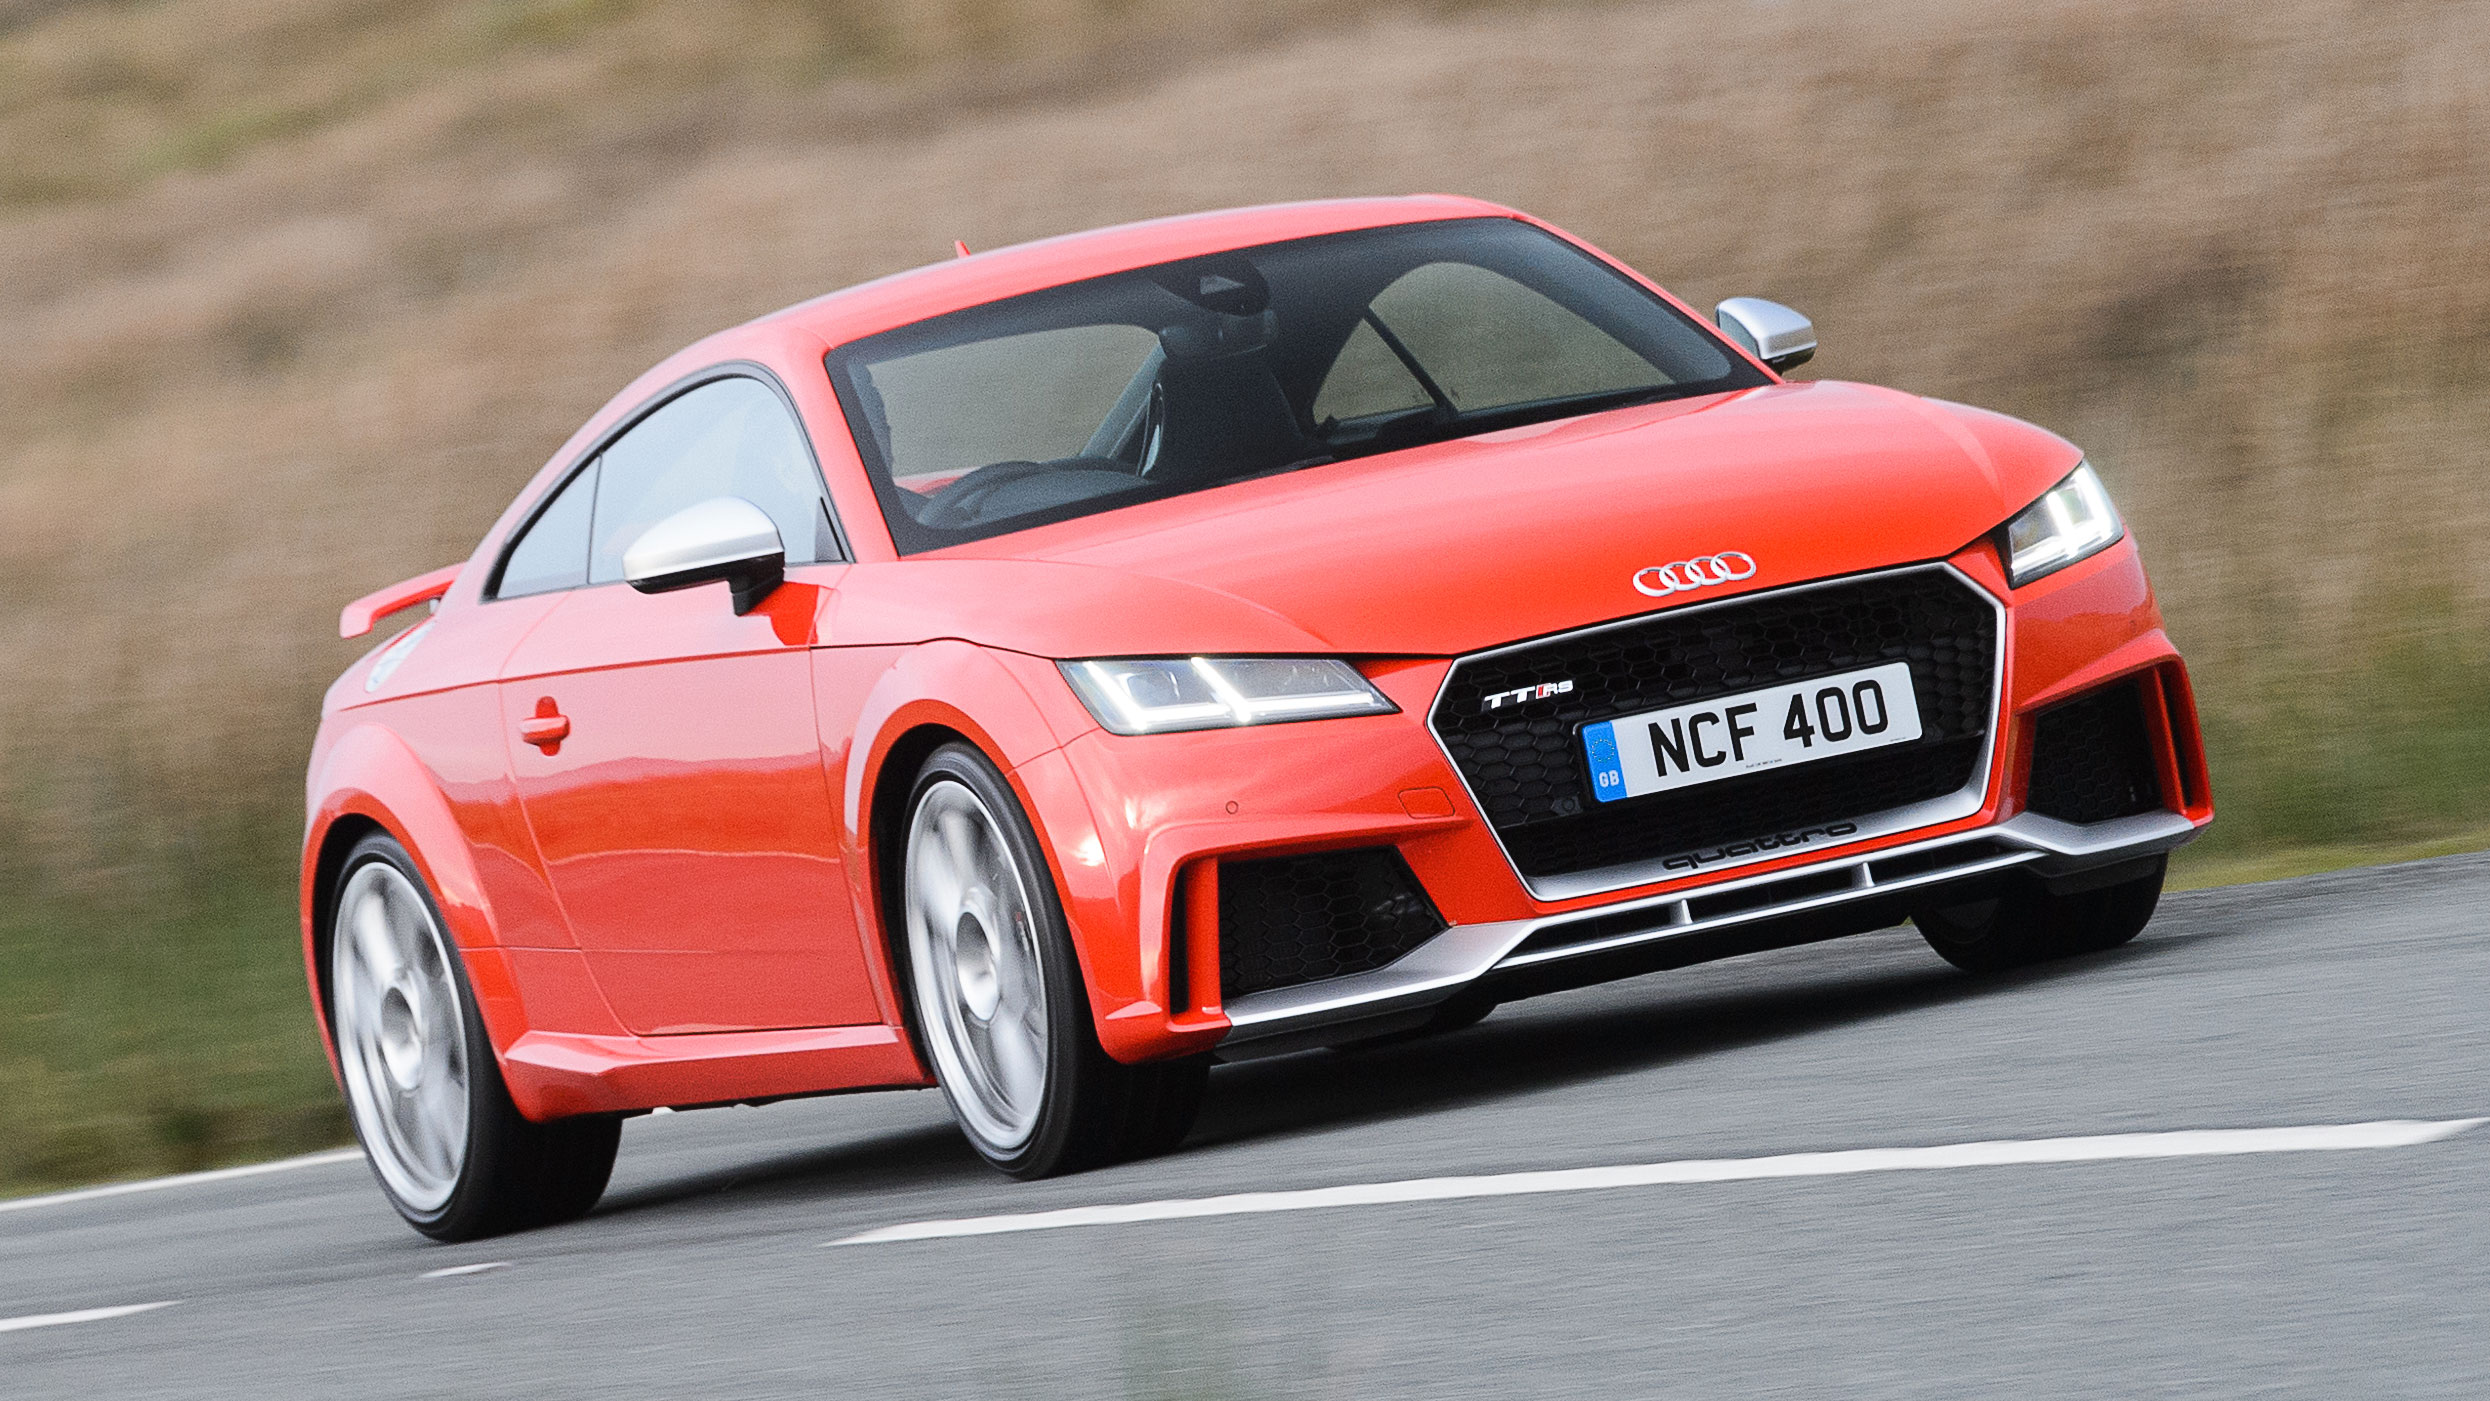 Audi Tt Rs Review 400bhp Quattro Coupe Driven In The Uk 2016 2018 Top Gear